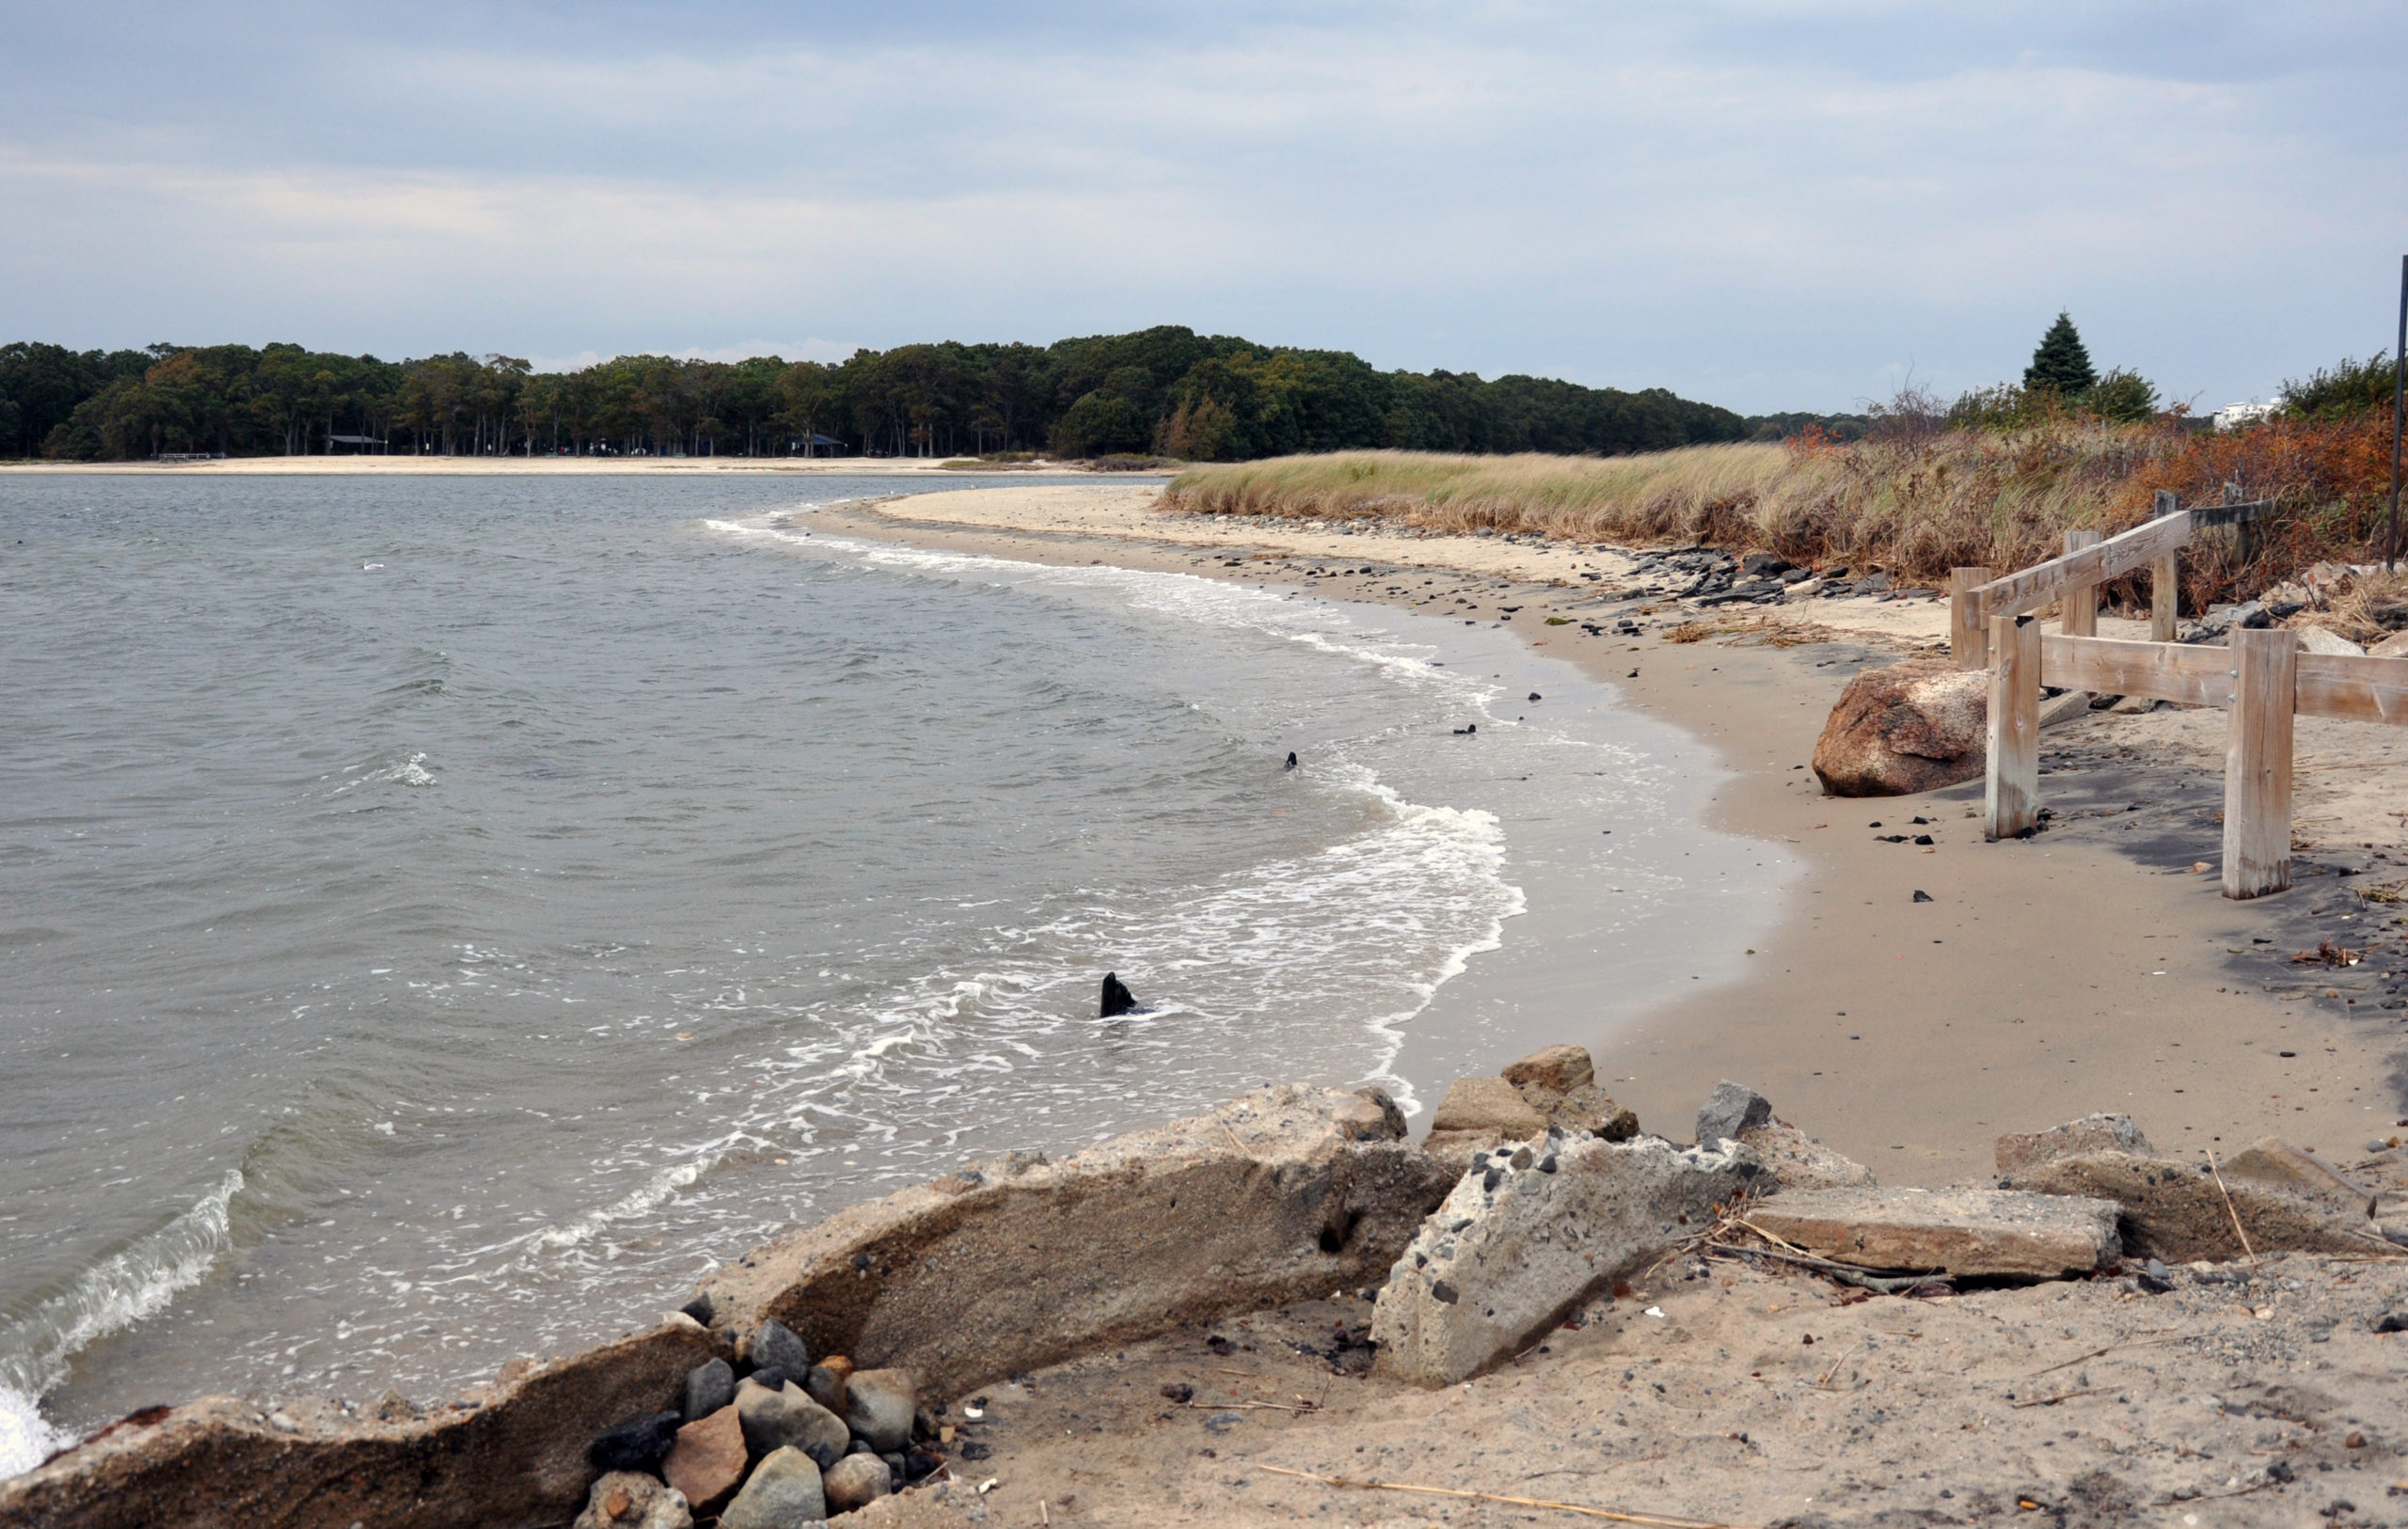 High tides and storms contribute to the erosion at the southern end of Sea View Drive, and flooding throughout the nearby neighborhoods.